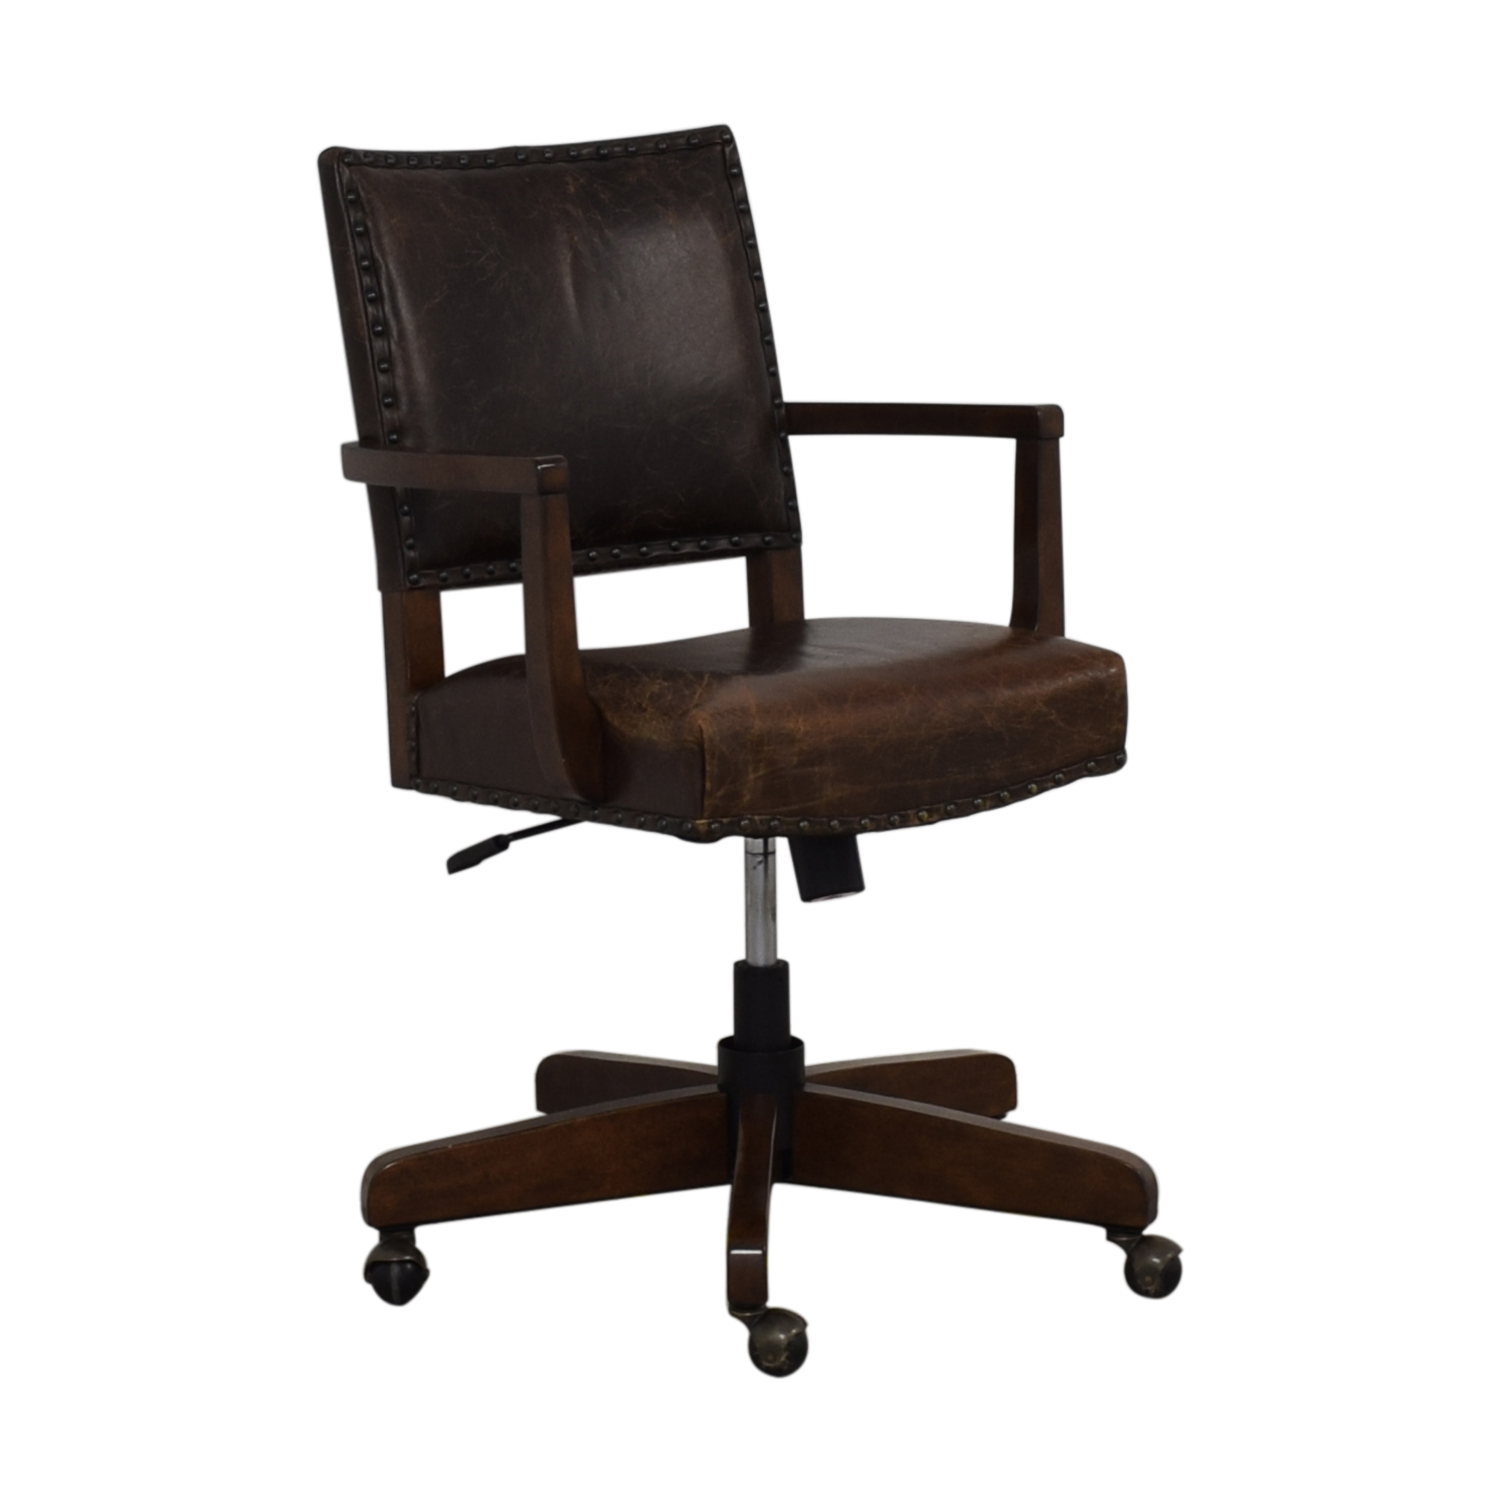 Pottery Barn Pottery Barn Manchester Swivel Desk Chair coupon